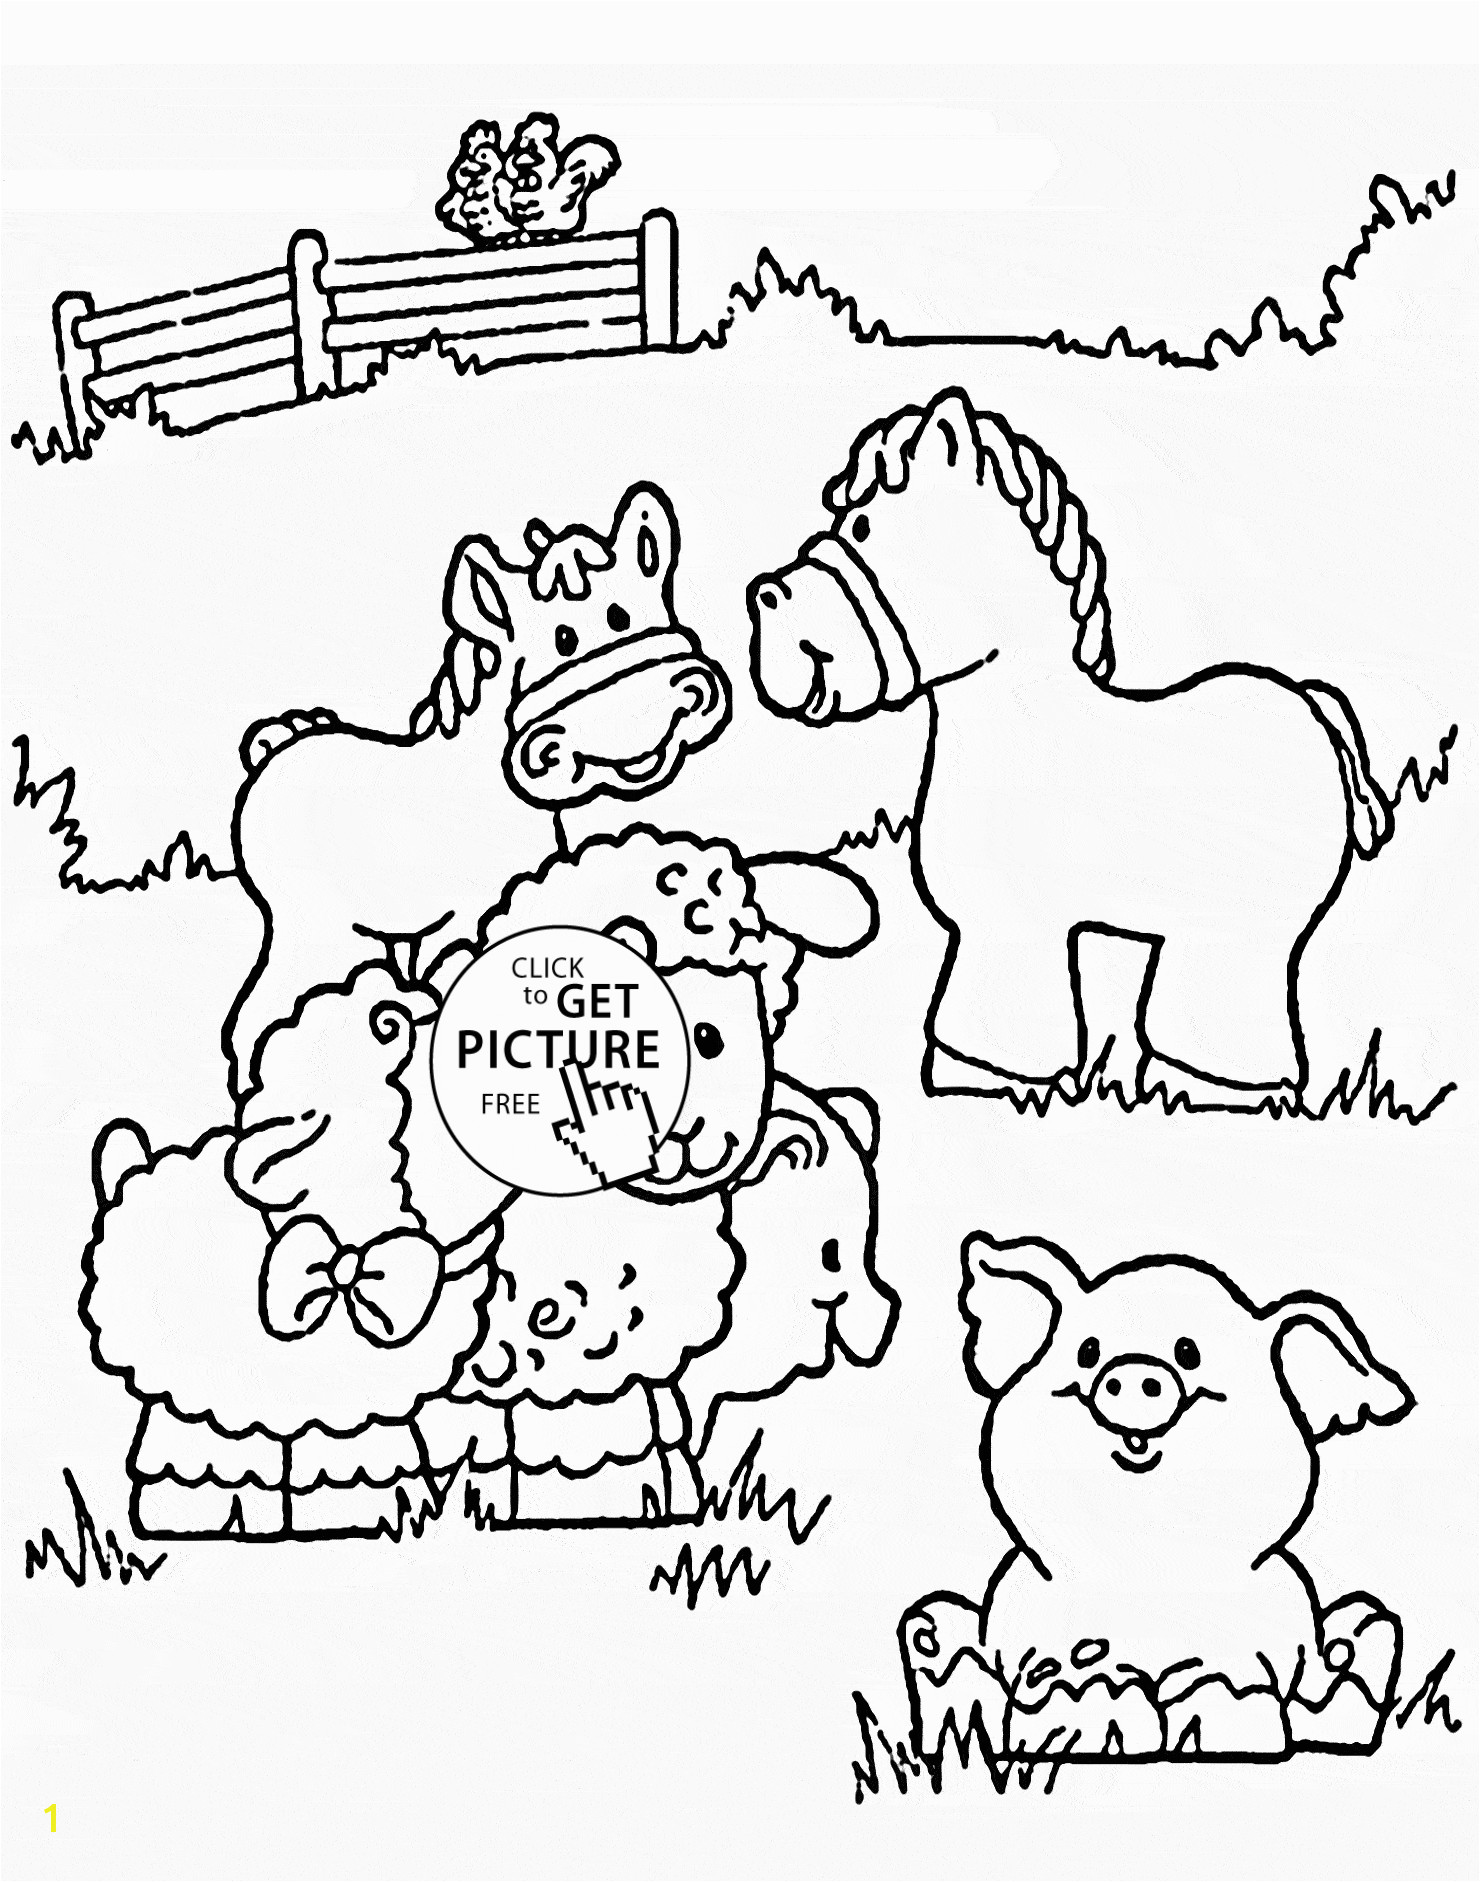 Funny Farm Animals coloring page for kids animal coloring pages printables free Wuppsy